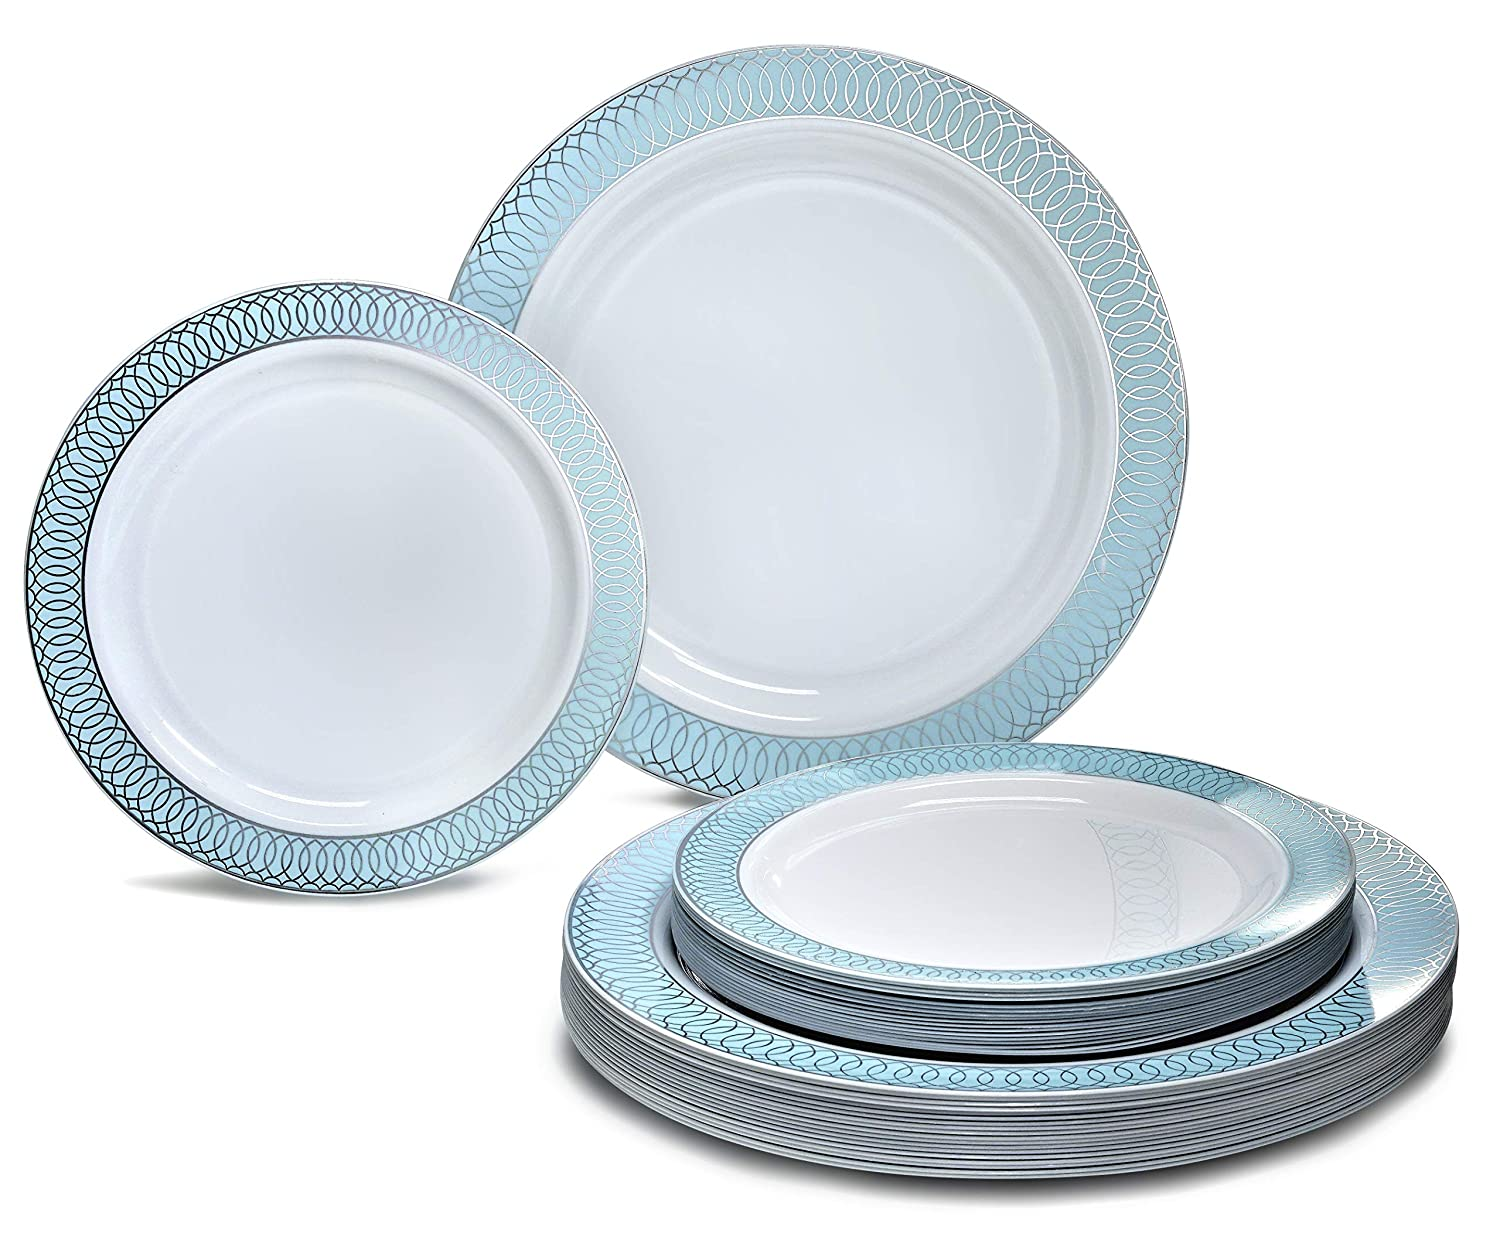 H.venice bluee & Silver 50 Piece (25 Guest) OCCASIONS 720 PCS   120 GUEST Wedding Disposable Plastic Plate and Silverware Combo Set (Diamond White Silver Plates, Silver Silverware)